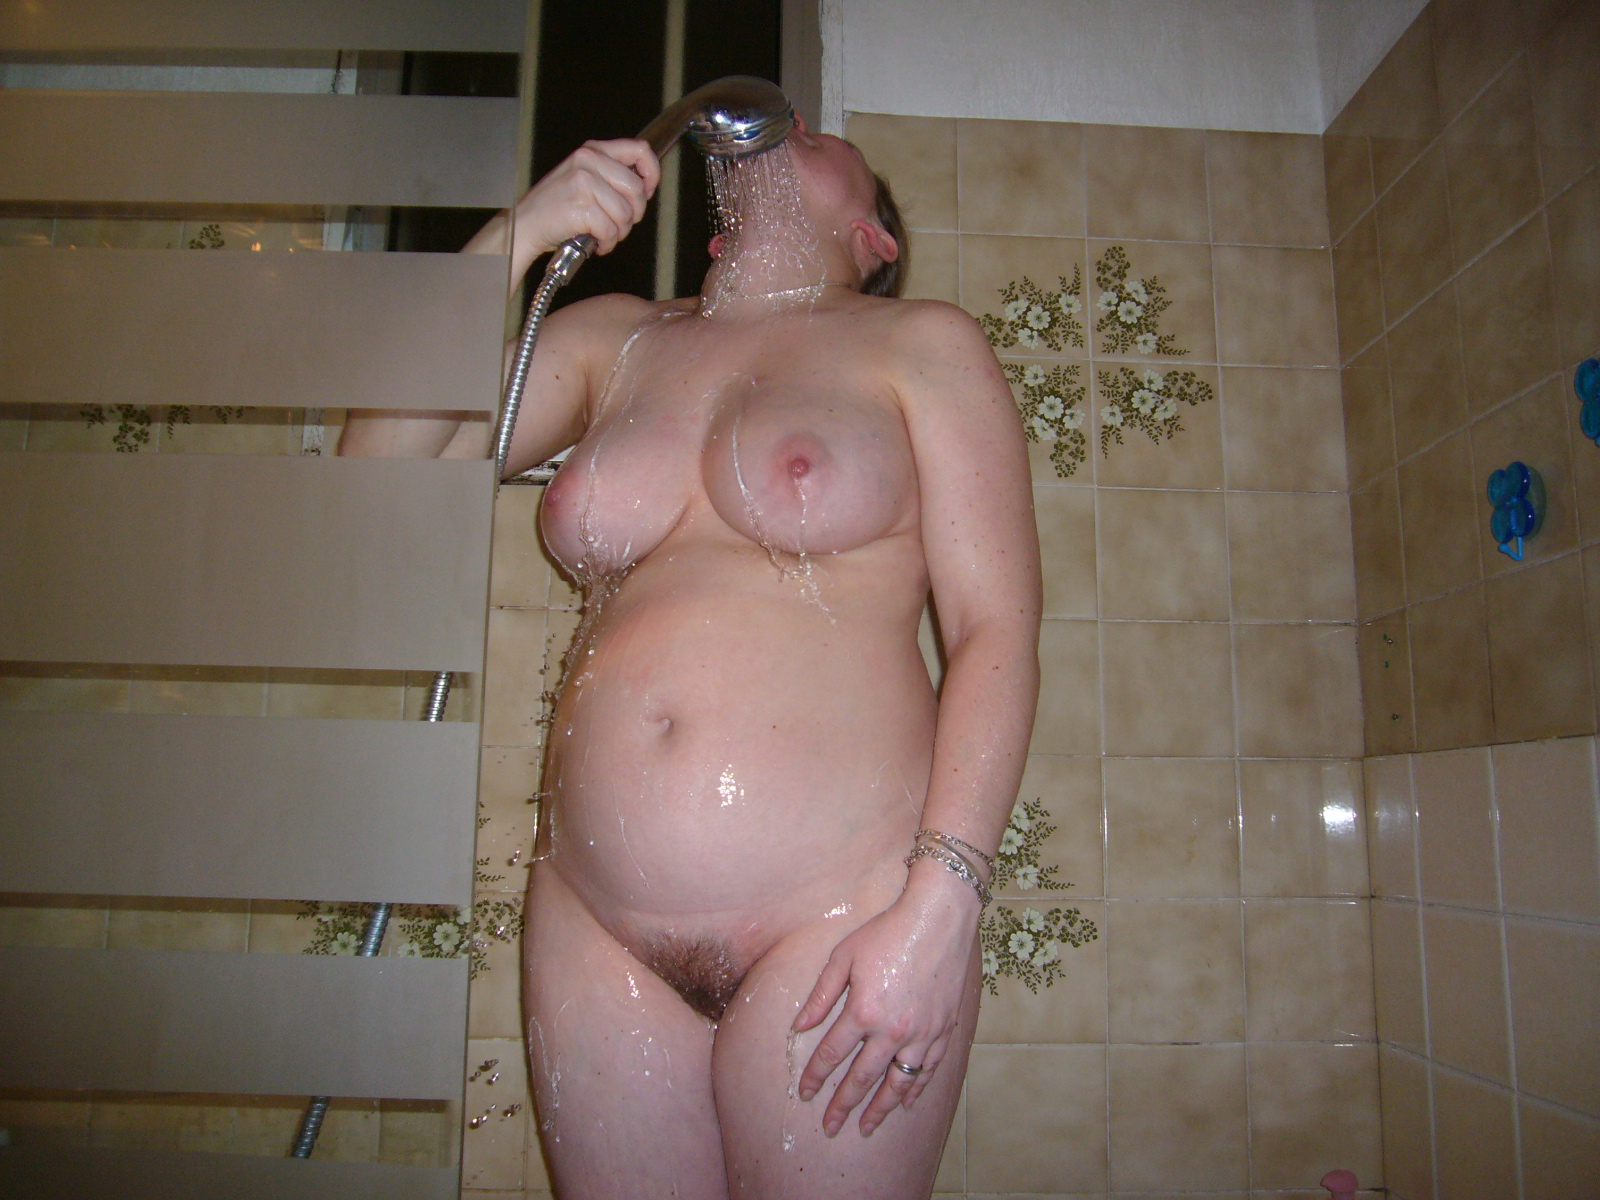 Sex shower the women pregnant having naked in